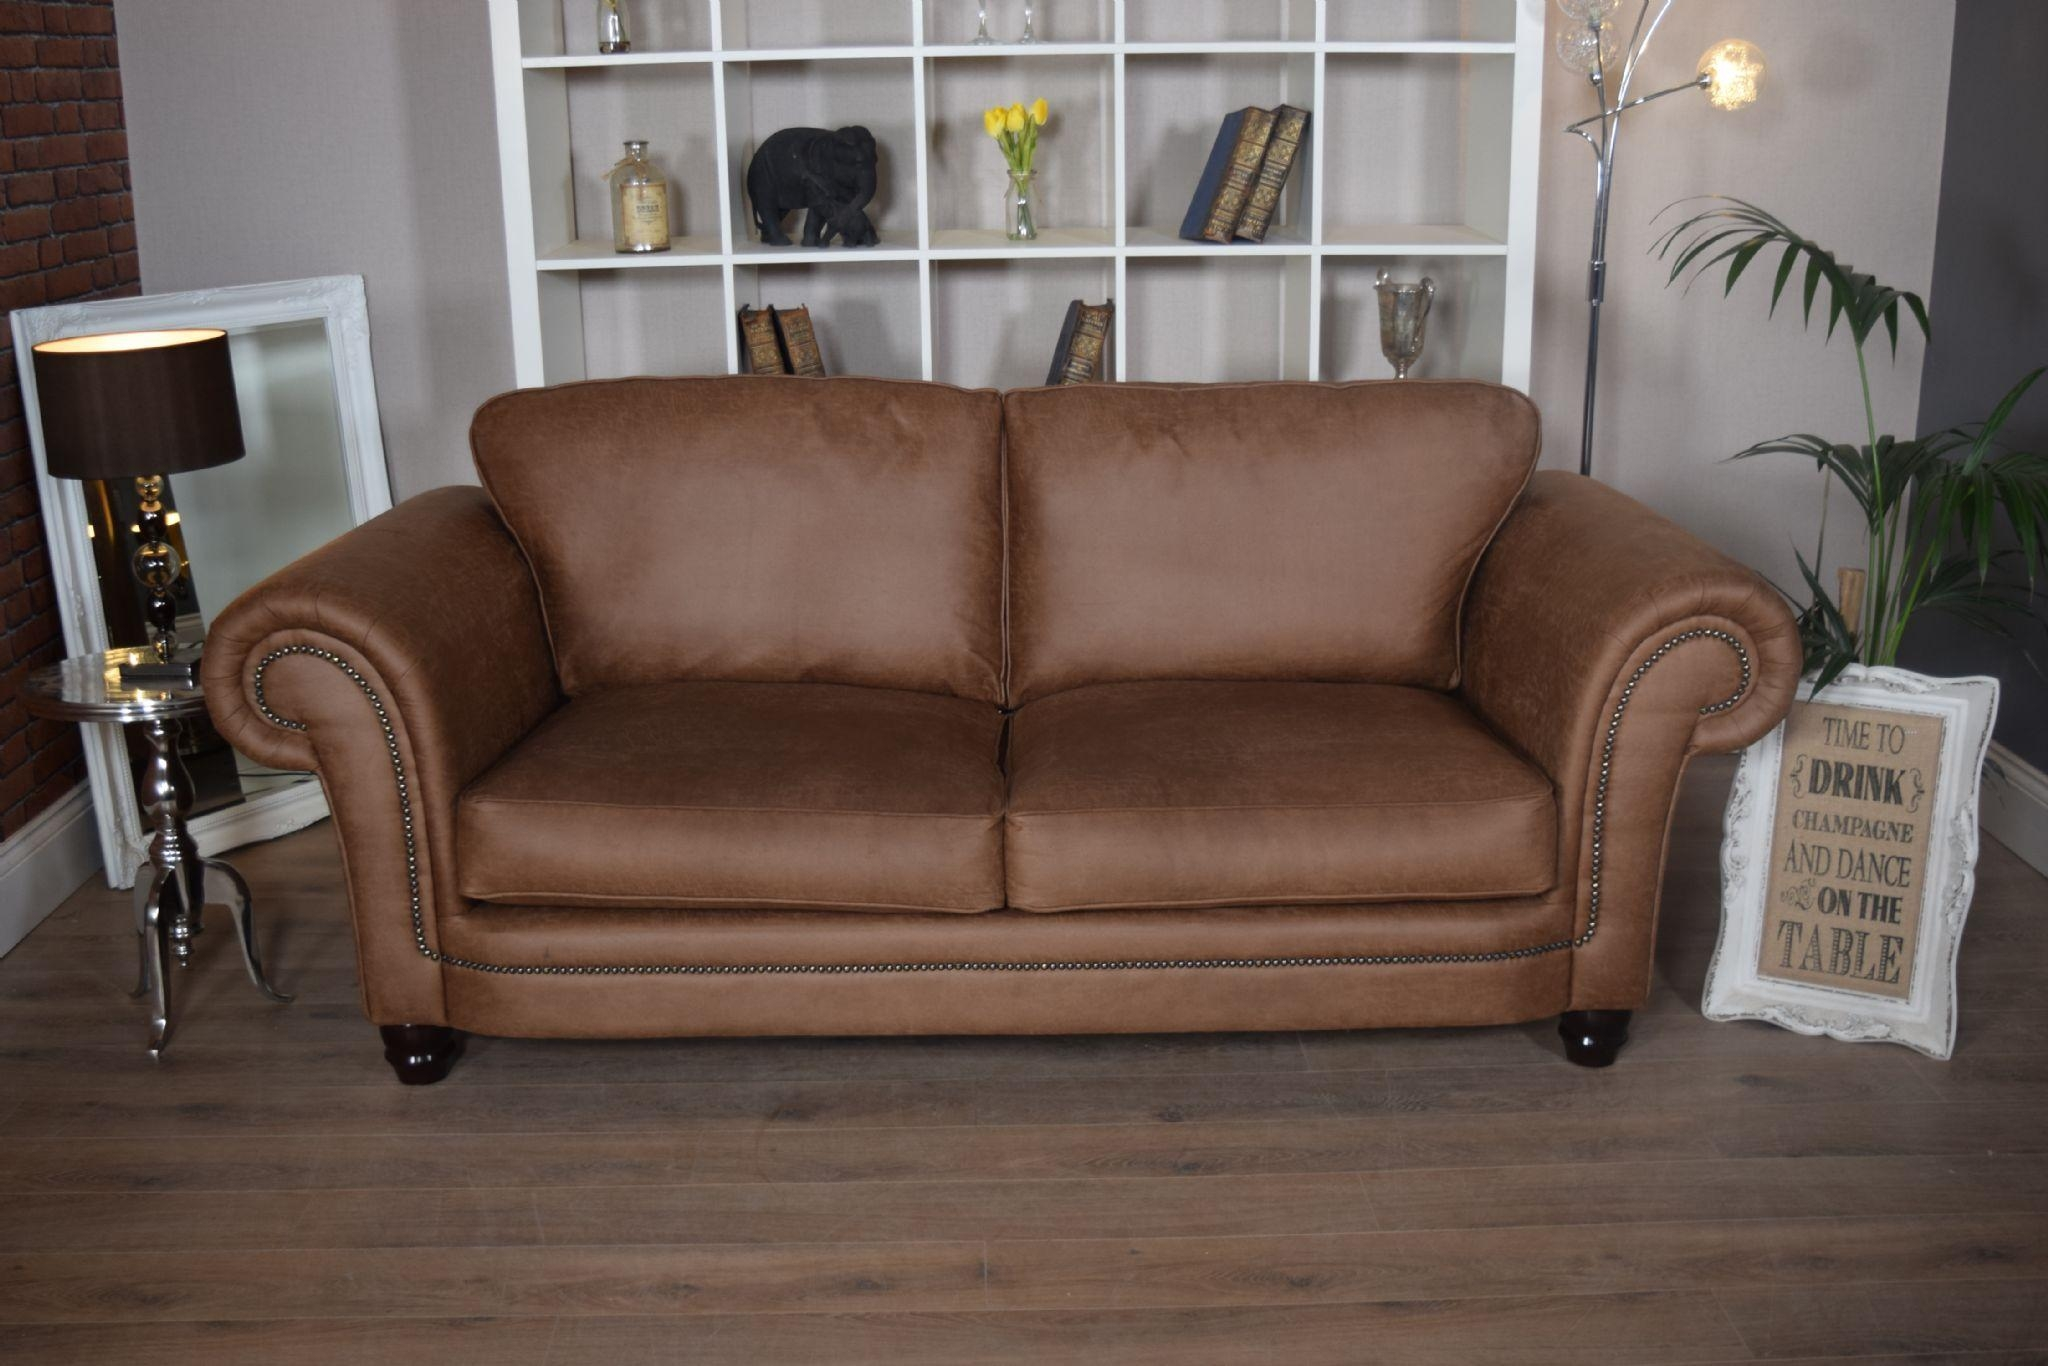 Set Abbey Downton 3 Seater Sofa & Large Cuddle Chair – Tan Fitted Back With Regard To 3 Seater Sofa And Cuddle Chairs (View 16 of 20)